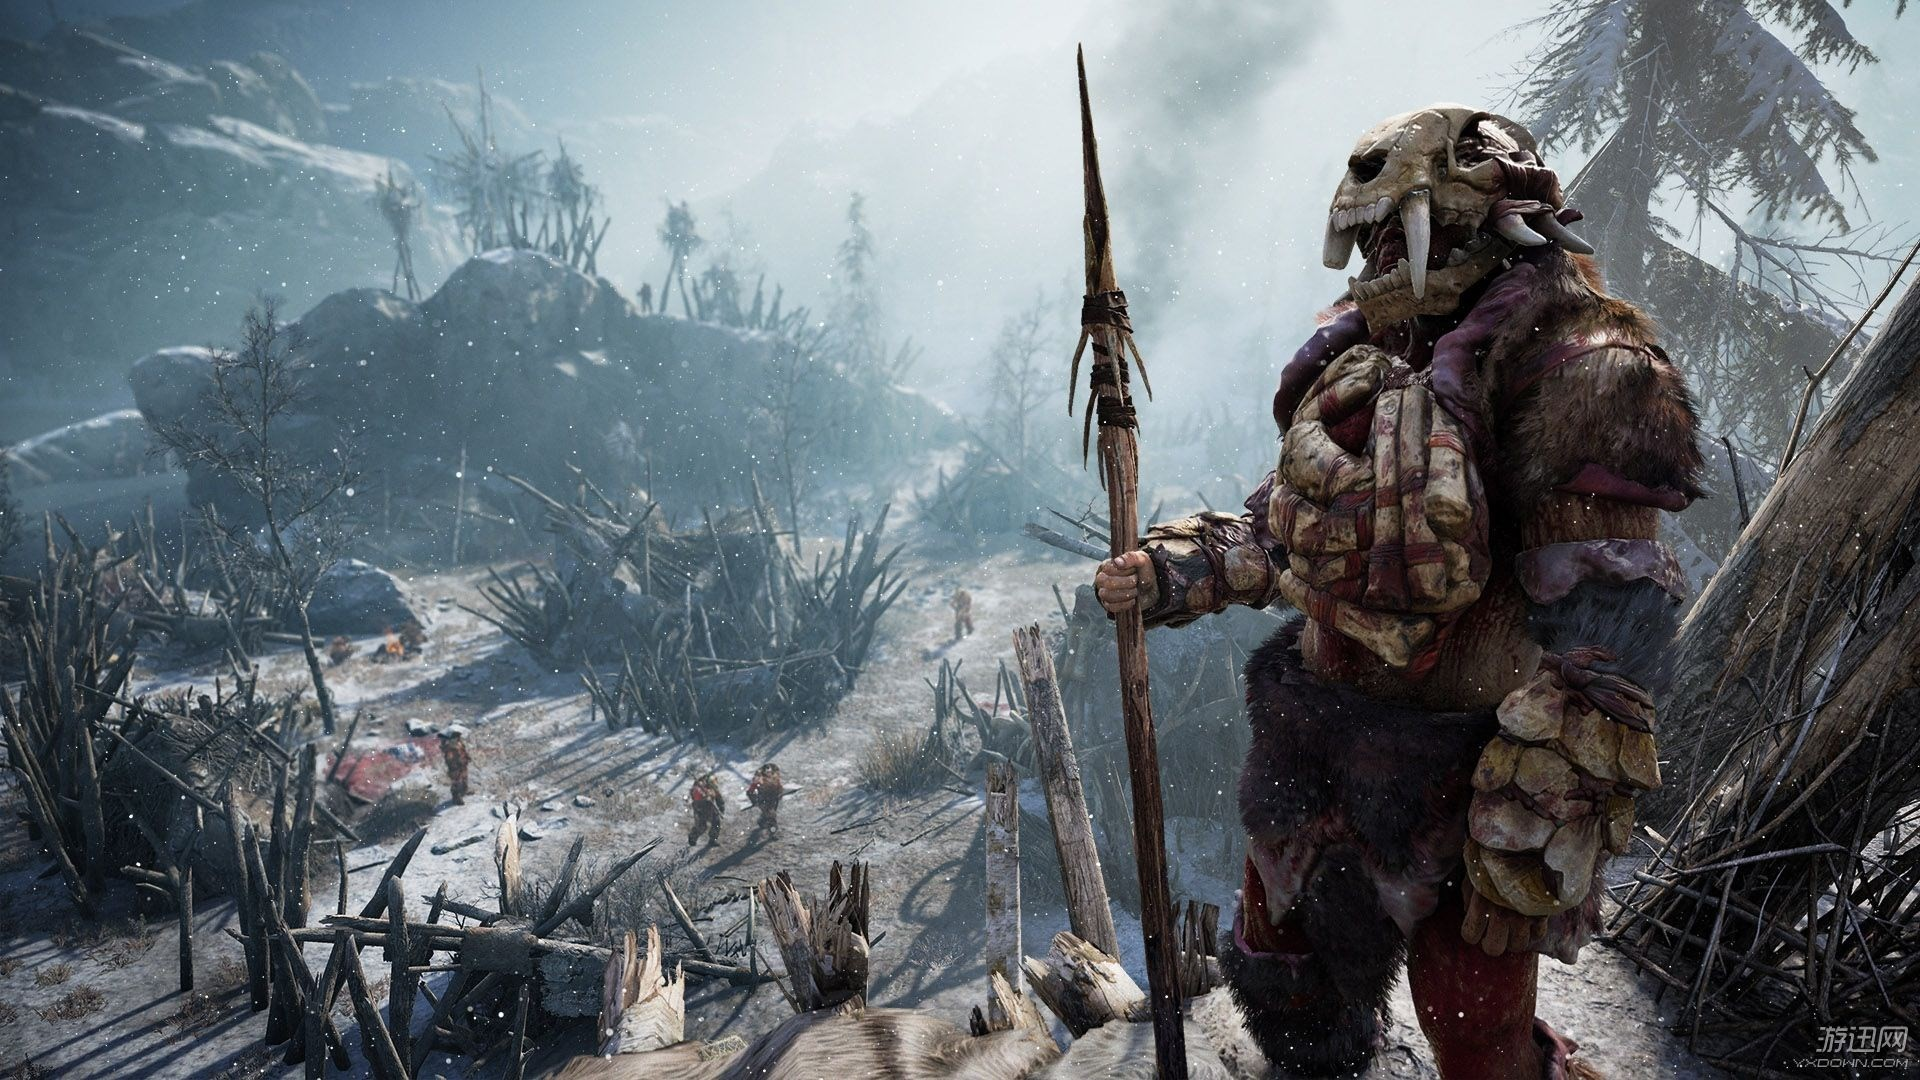 1920x1080 far cry primal pic - Full HD Wallpapers, Photos - far cry primal category